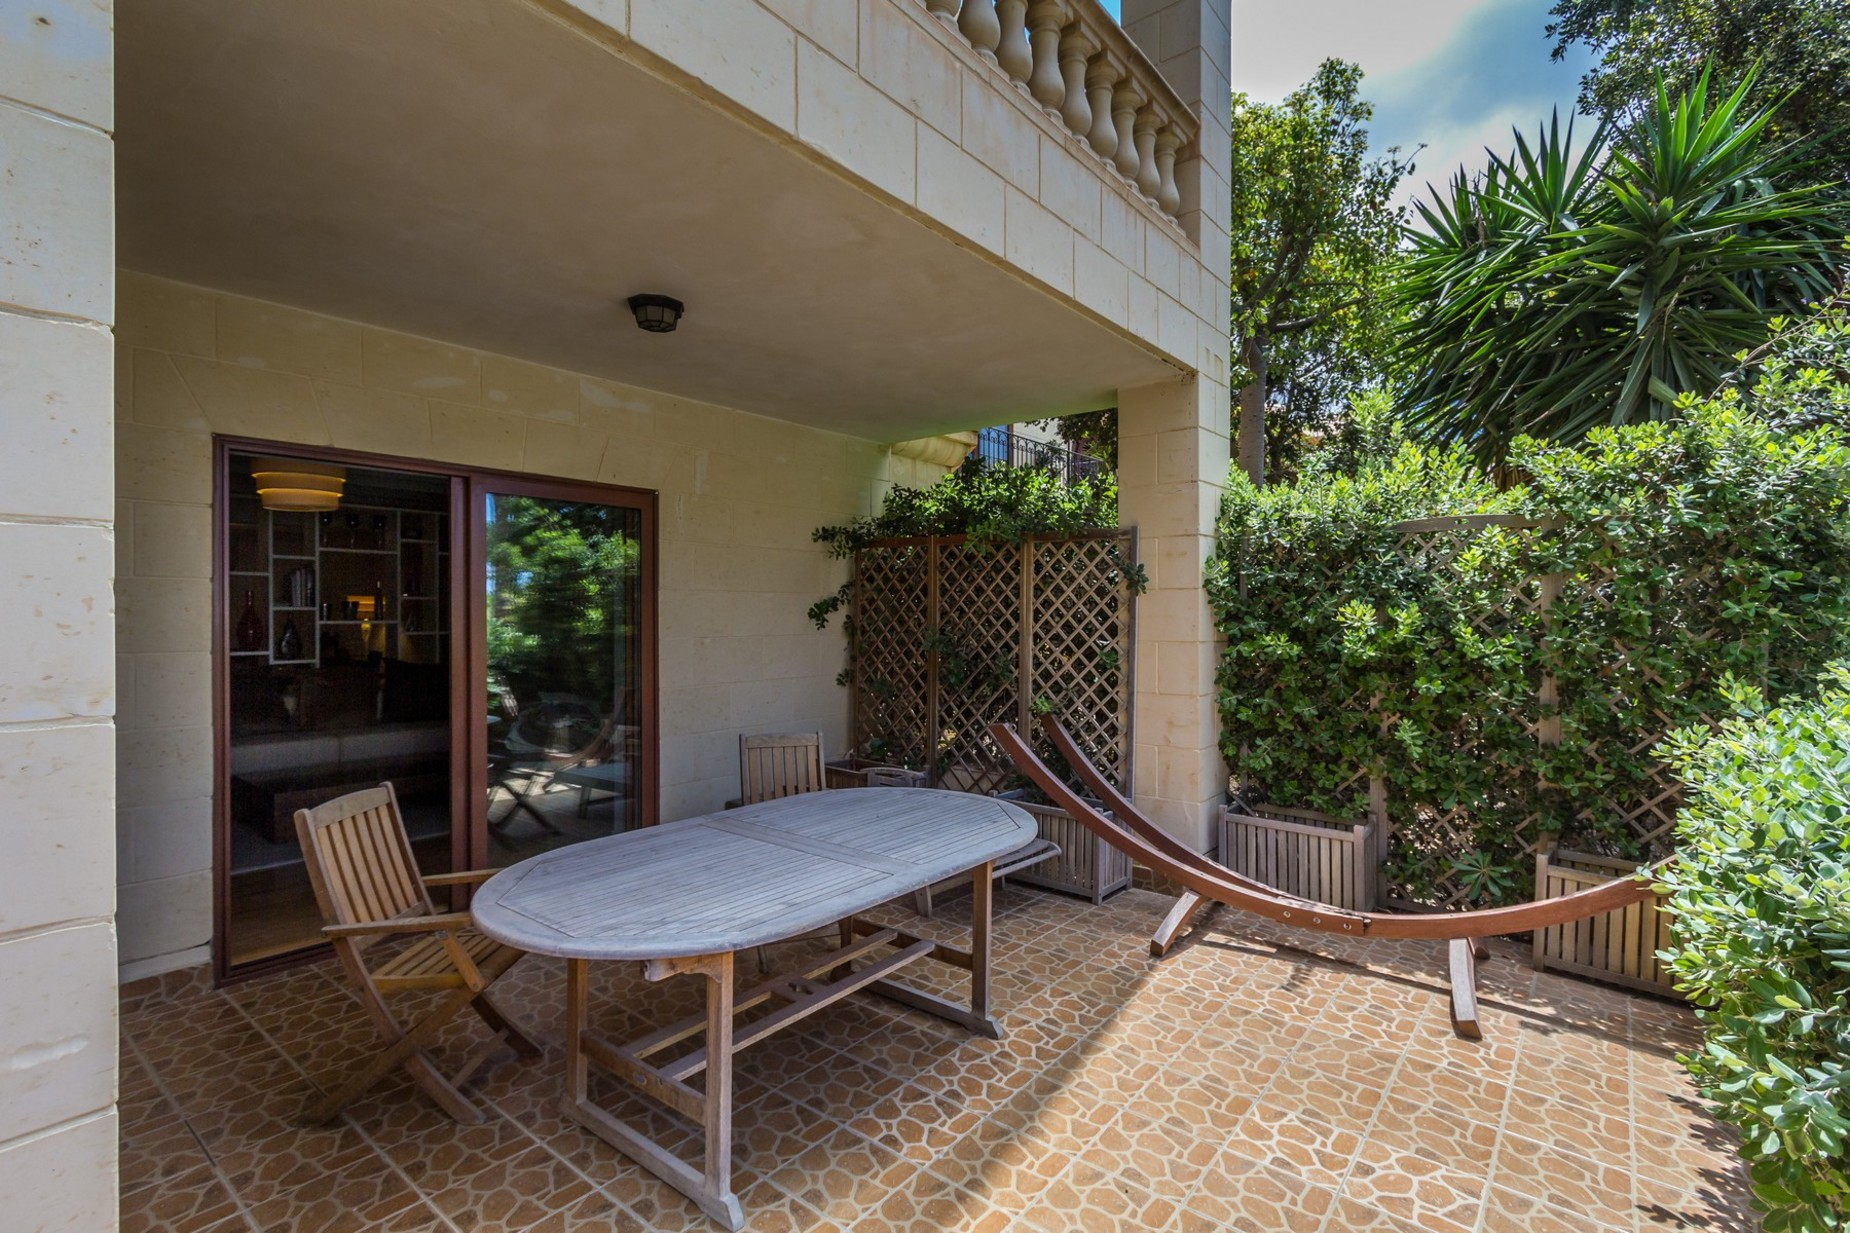 3 bed Apartment For Sale in San Lawrenz, San Lawrenz - thumb 13